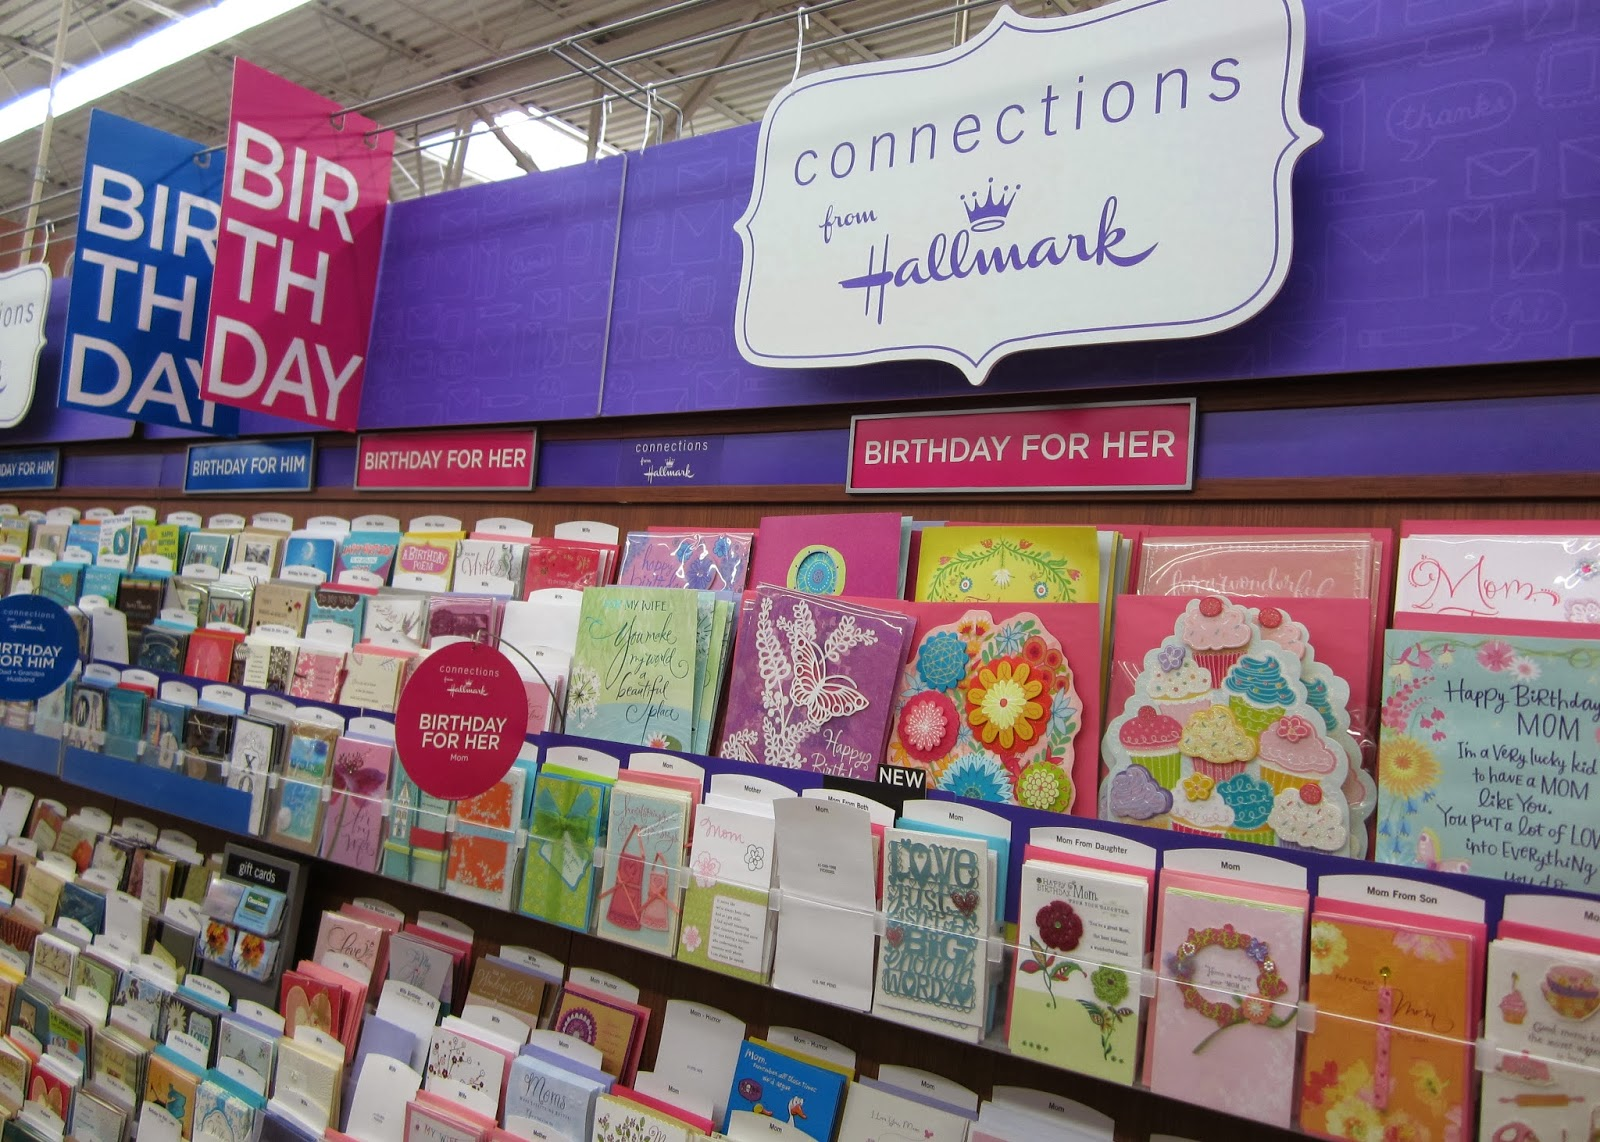 I Always Shop At Walmart For All The Birthday Cards Buy Selection Of They Carry Is Enormous And Love Knowing Ill Find Perfect Card That